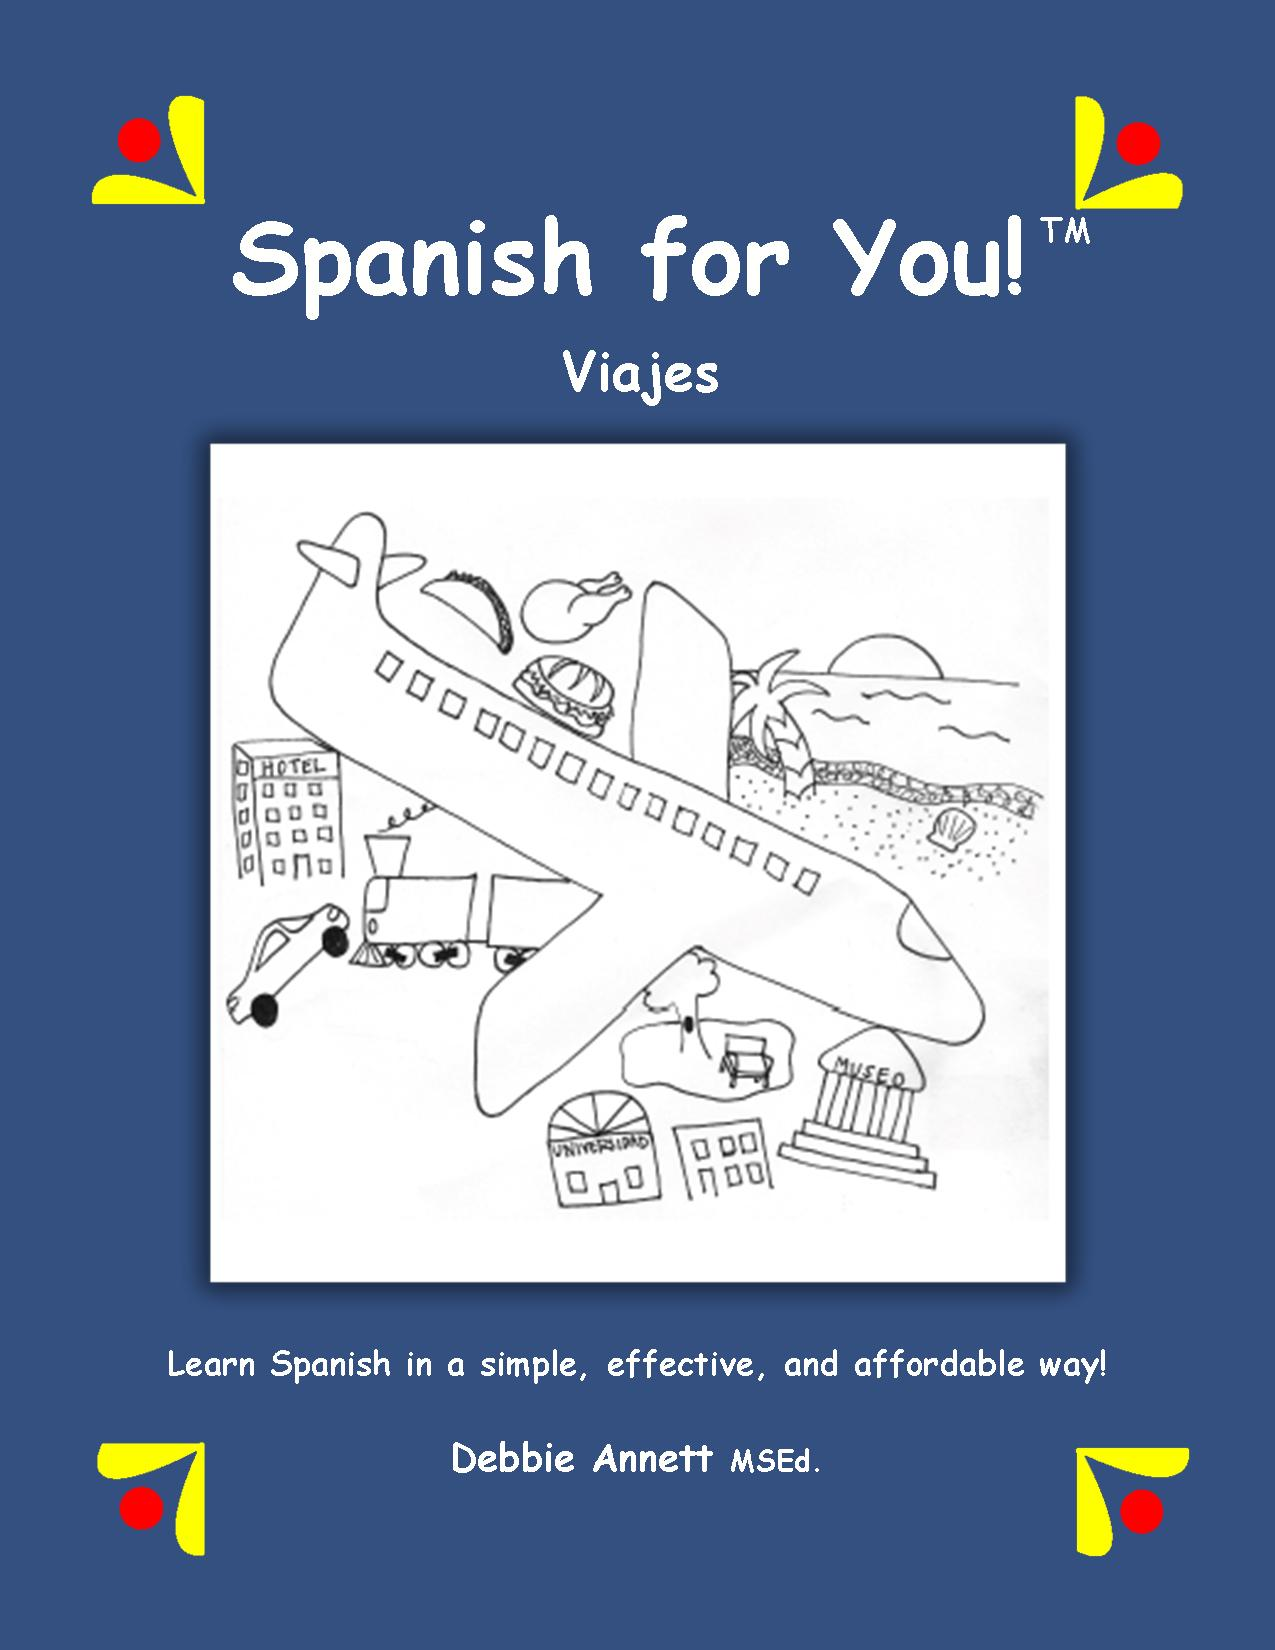 Spanish Curriculum For Elementary And Middle School